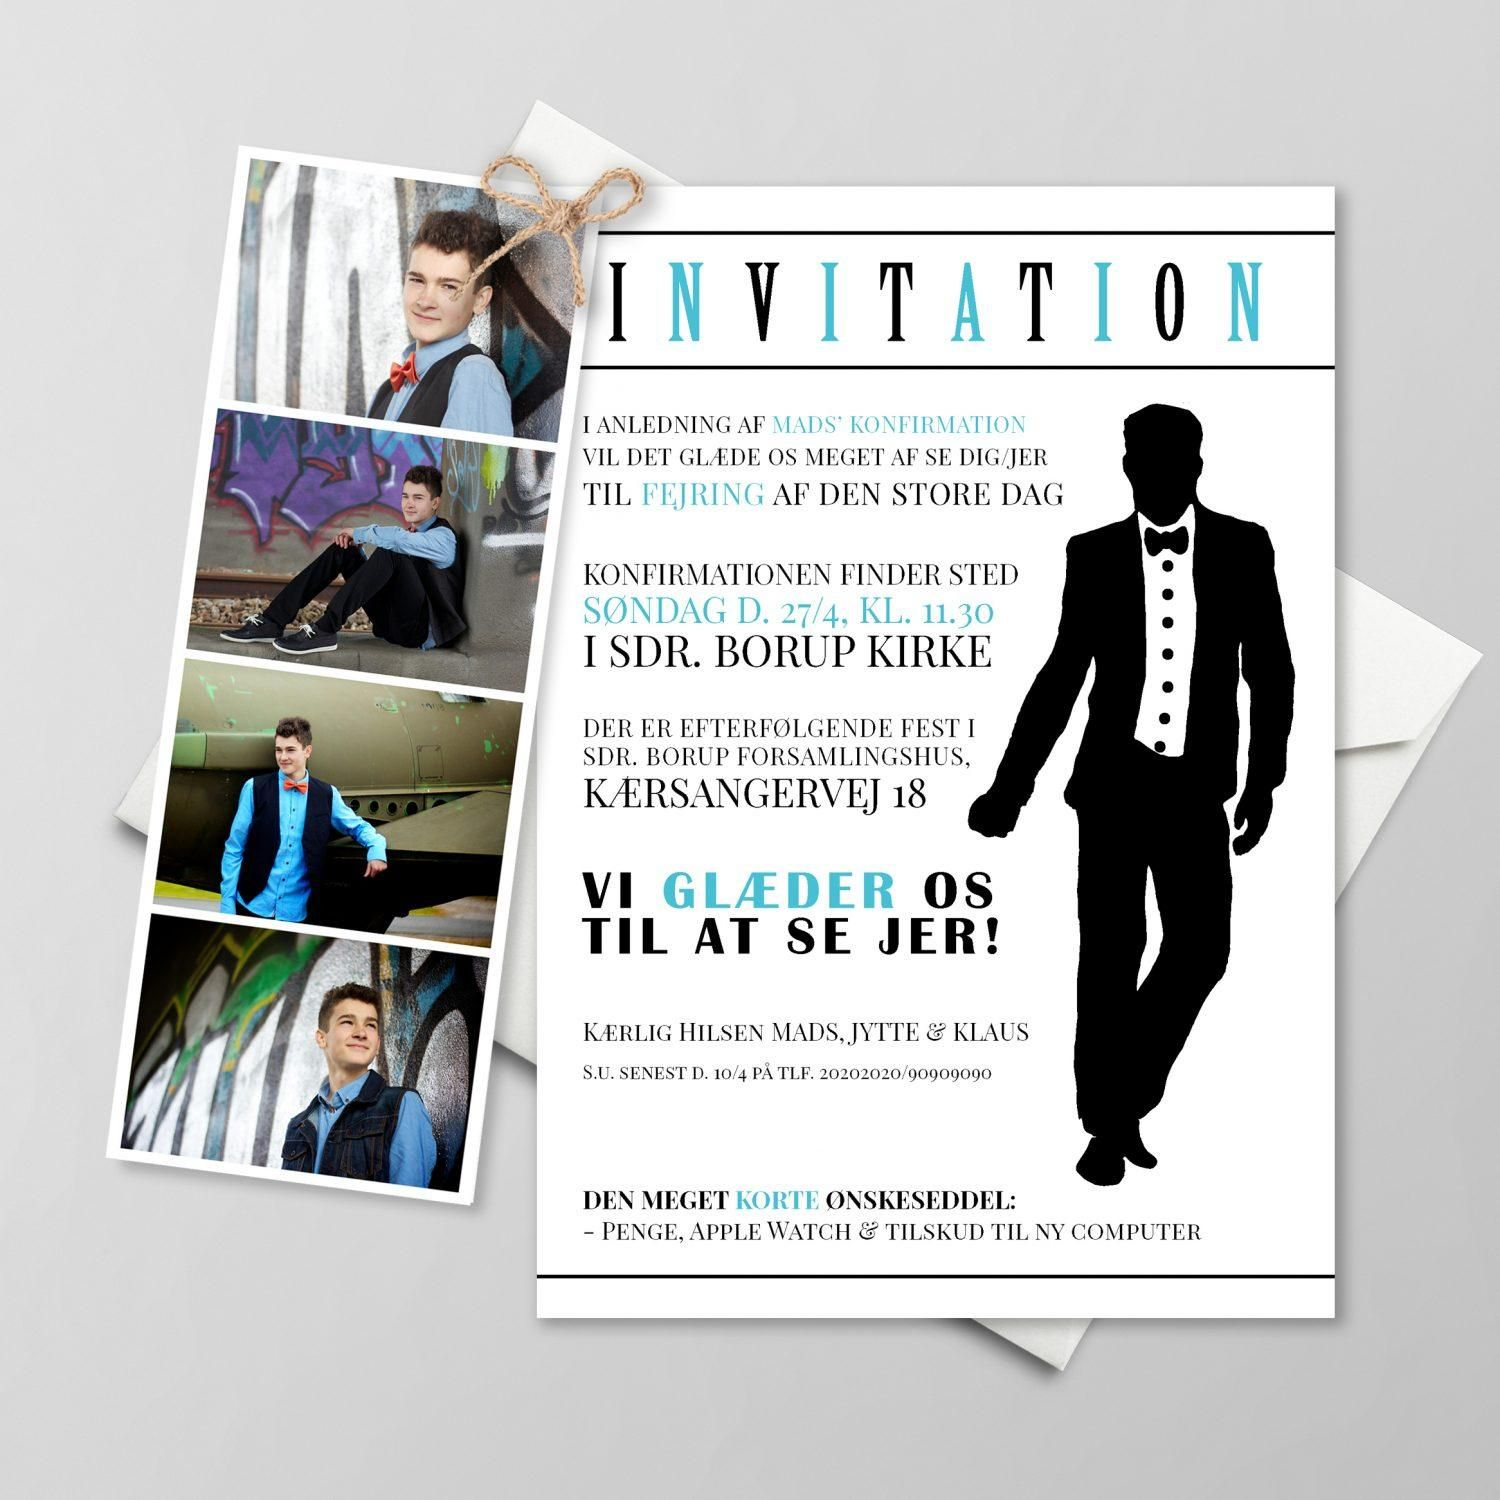 Suit Up Med Billeder Invitation